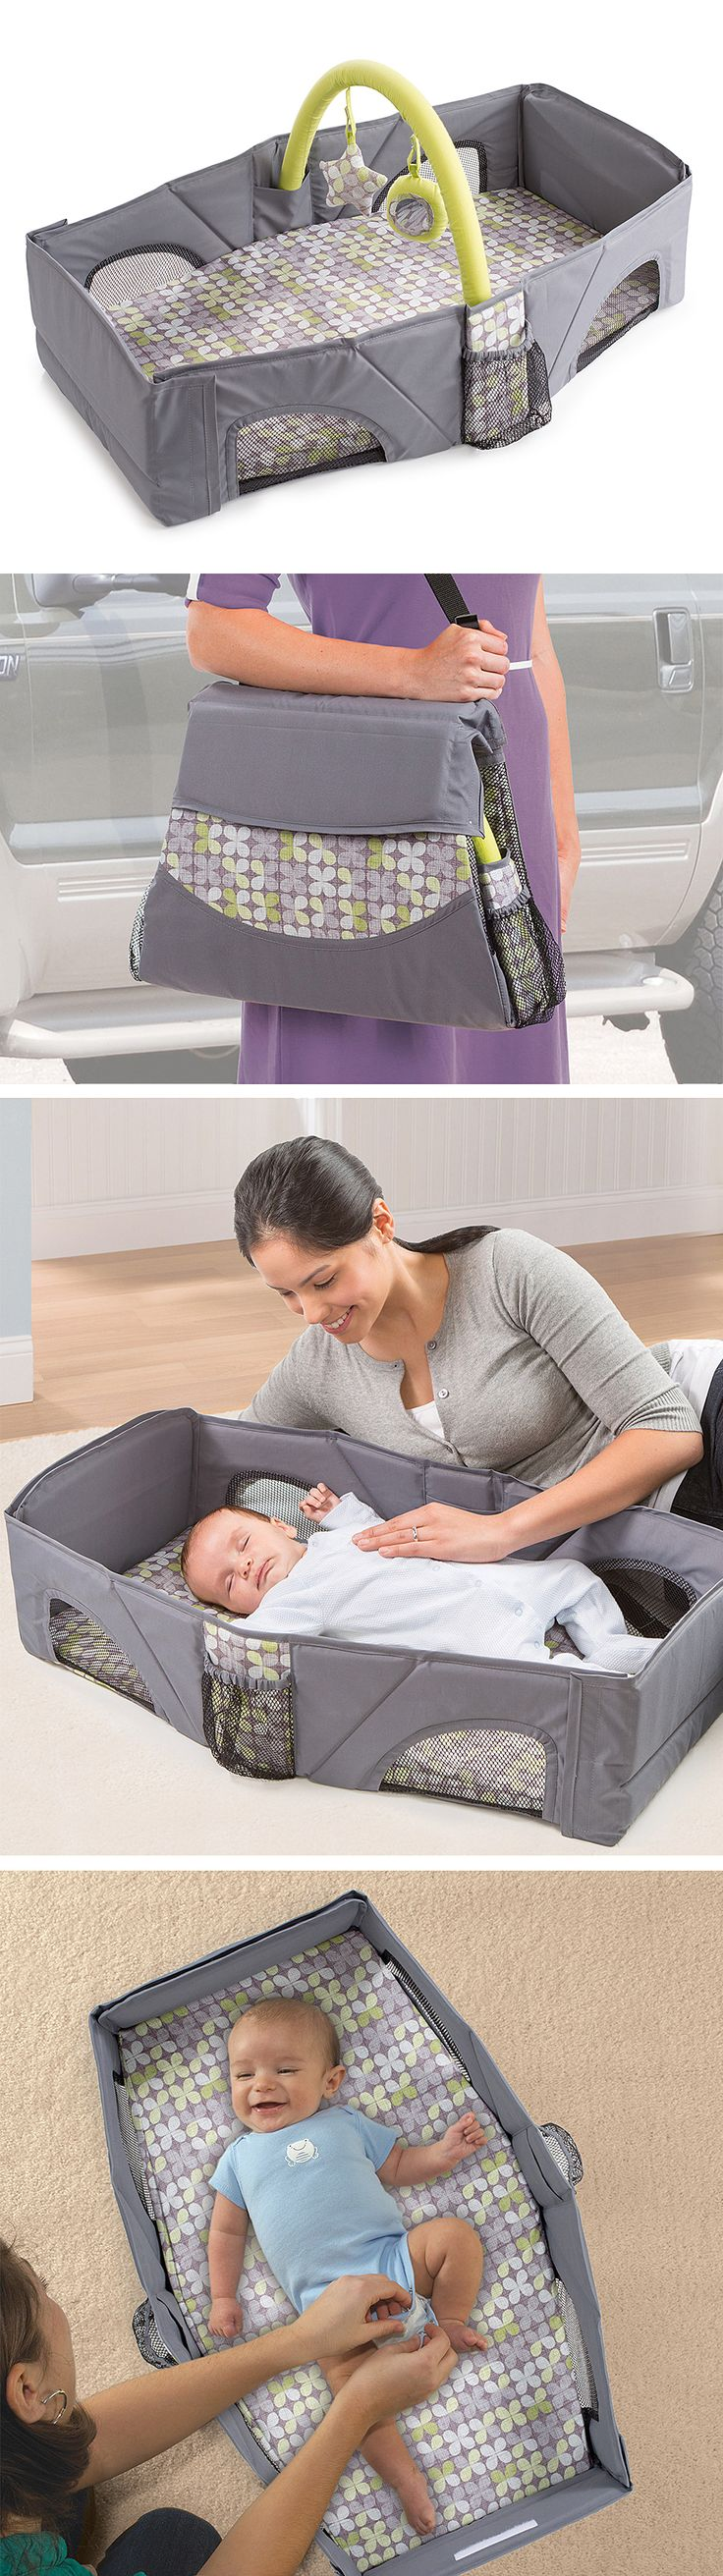 Folding Travel Crib Bed & Diaper Play Station // folds up to the size of a small tote bag, perfect for travelling with a small baby. #product_design